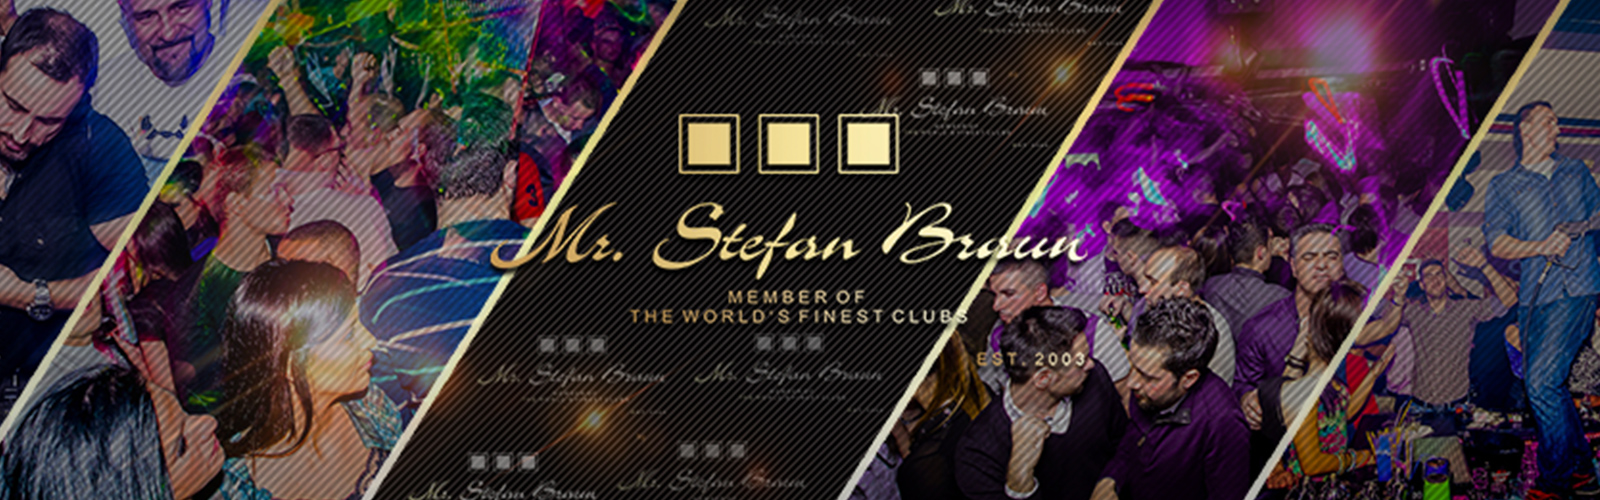 Concierge Belgrade | Club Mr Stefan Braun